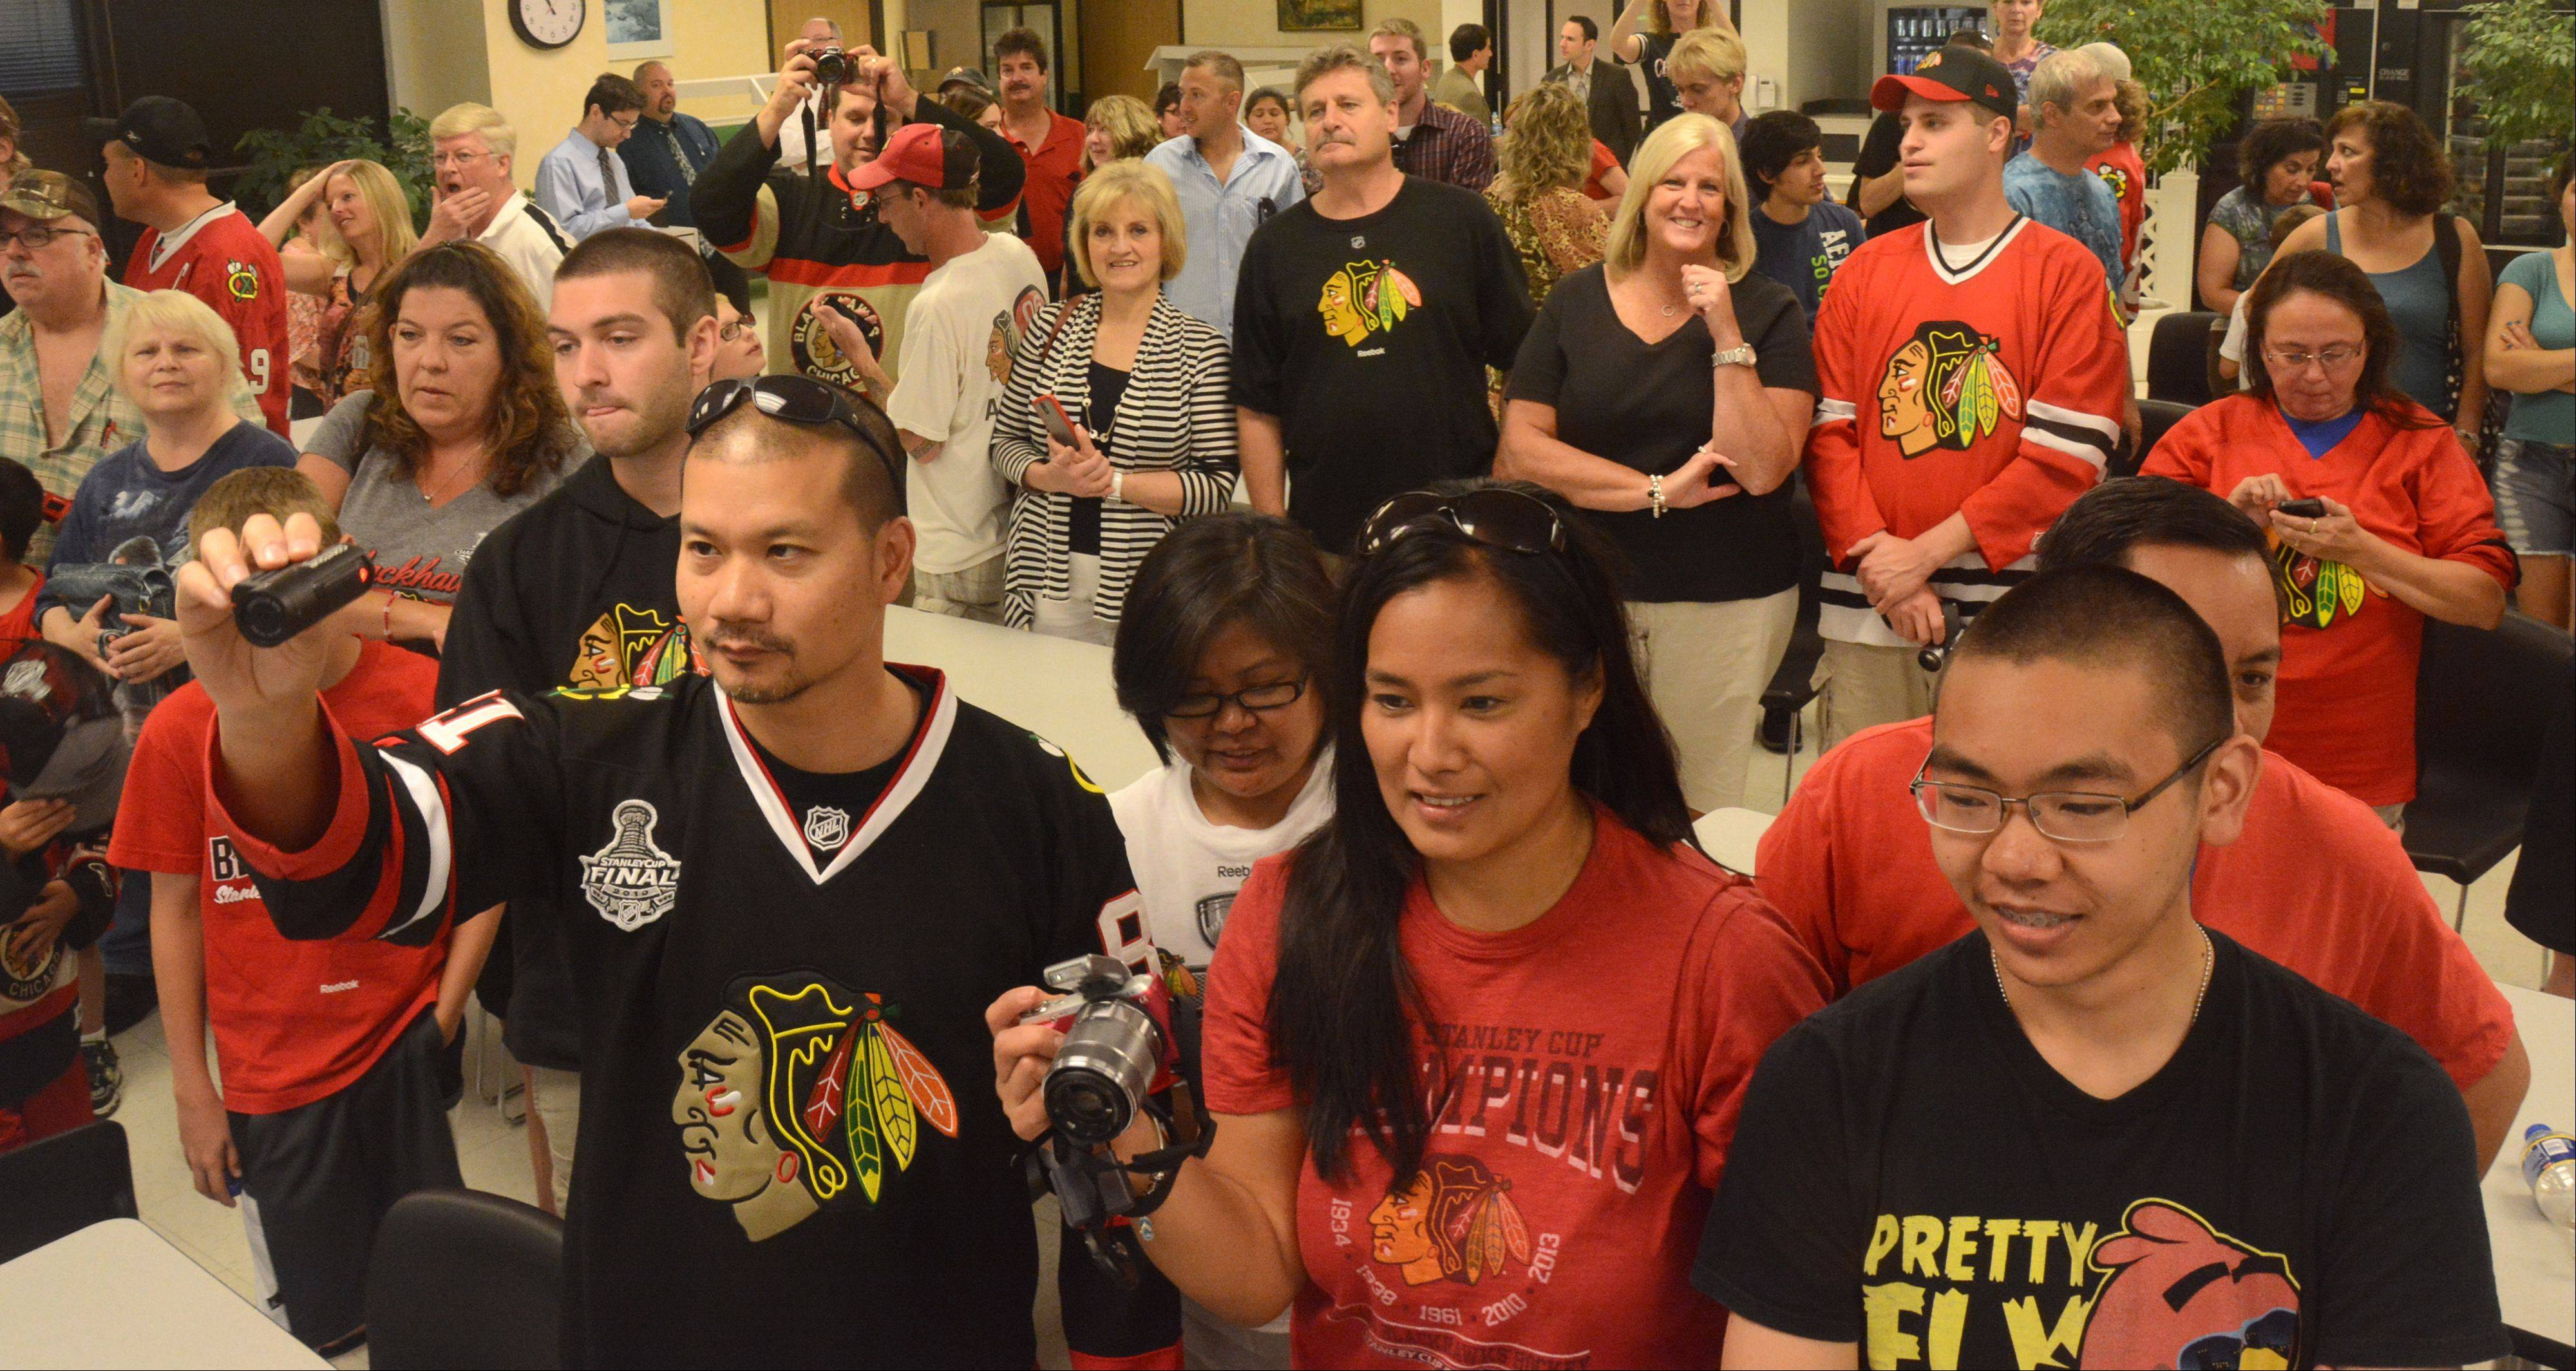 A line of people gathered for a photo opportunity with the Stanley Cup at the Daily Herald office Friday in Arlington Heights.